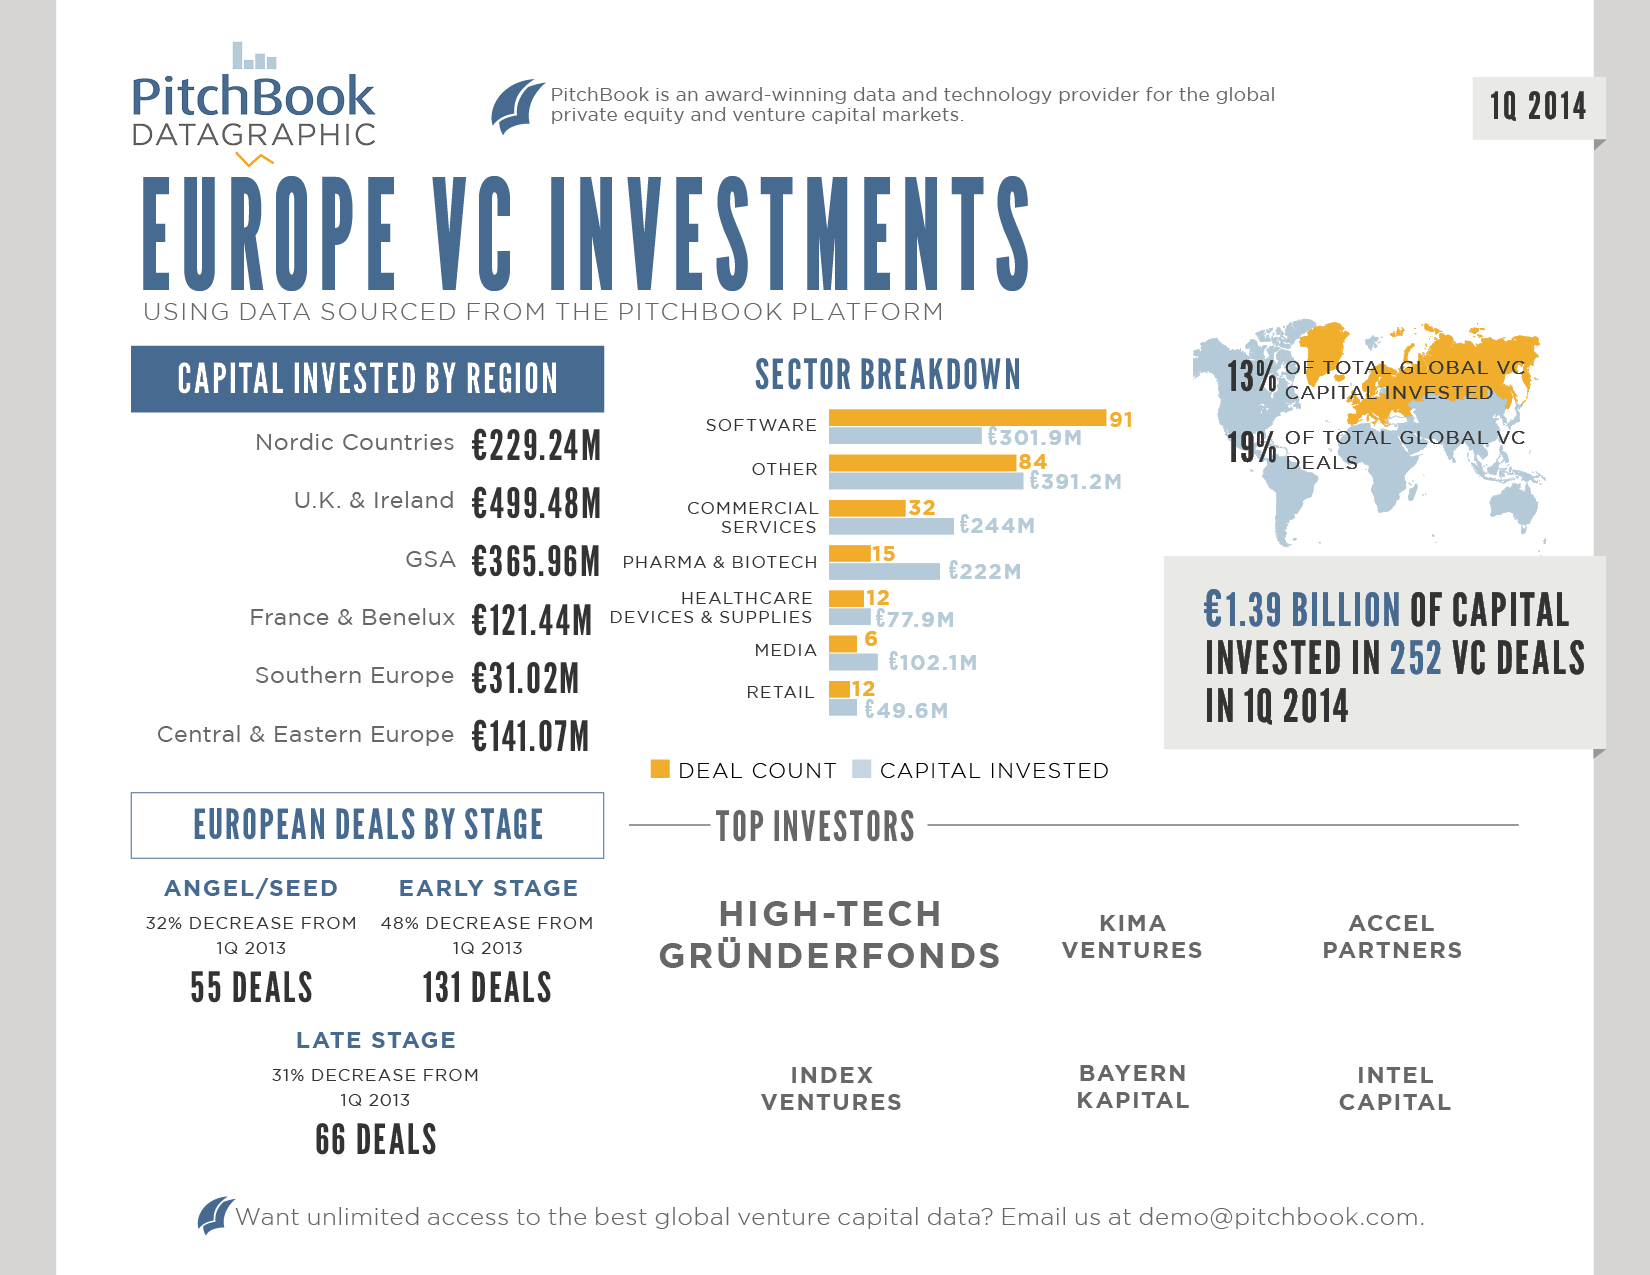 20140401 - PitchBook - Europe 1Q 2014 VC Datagraphic